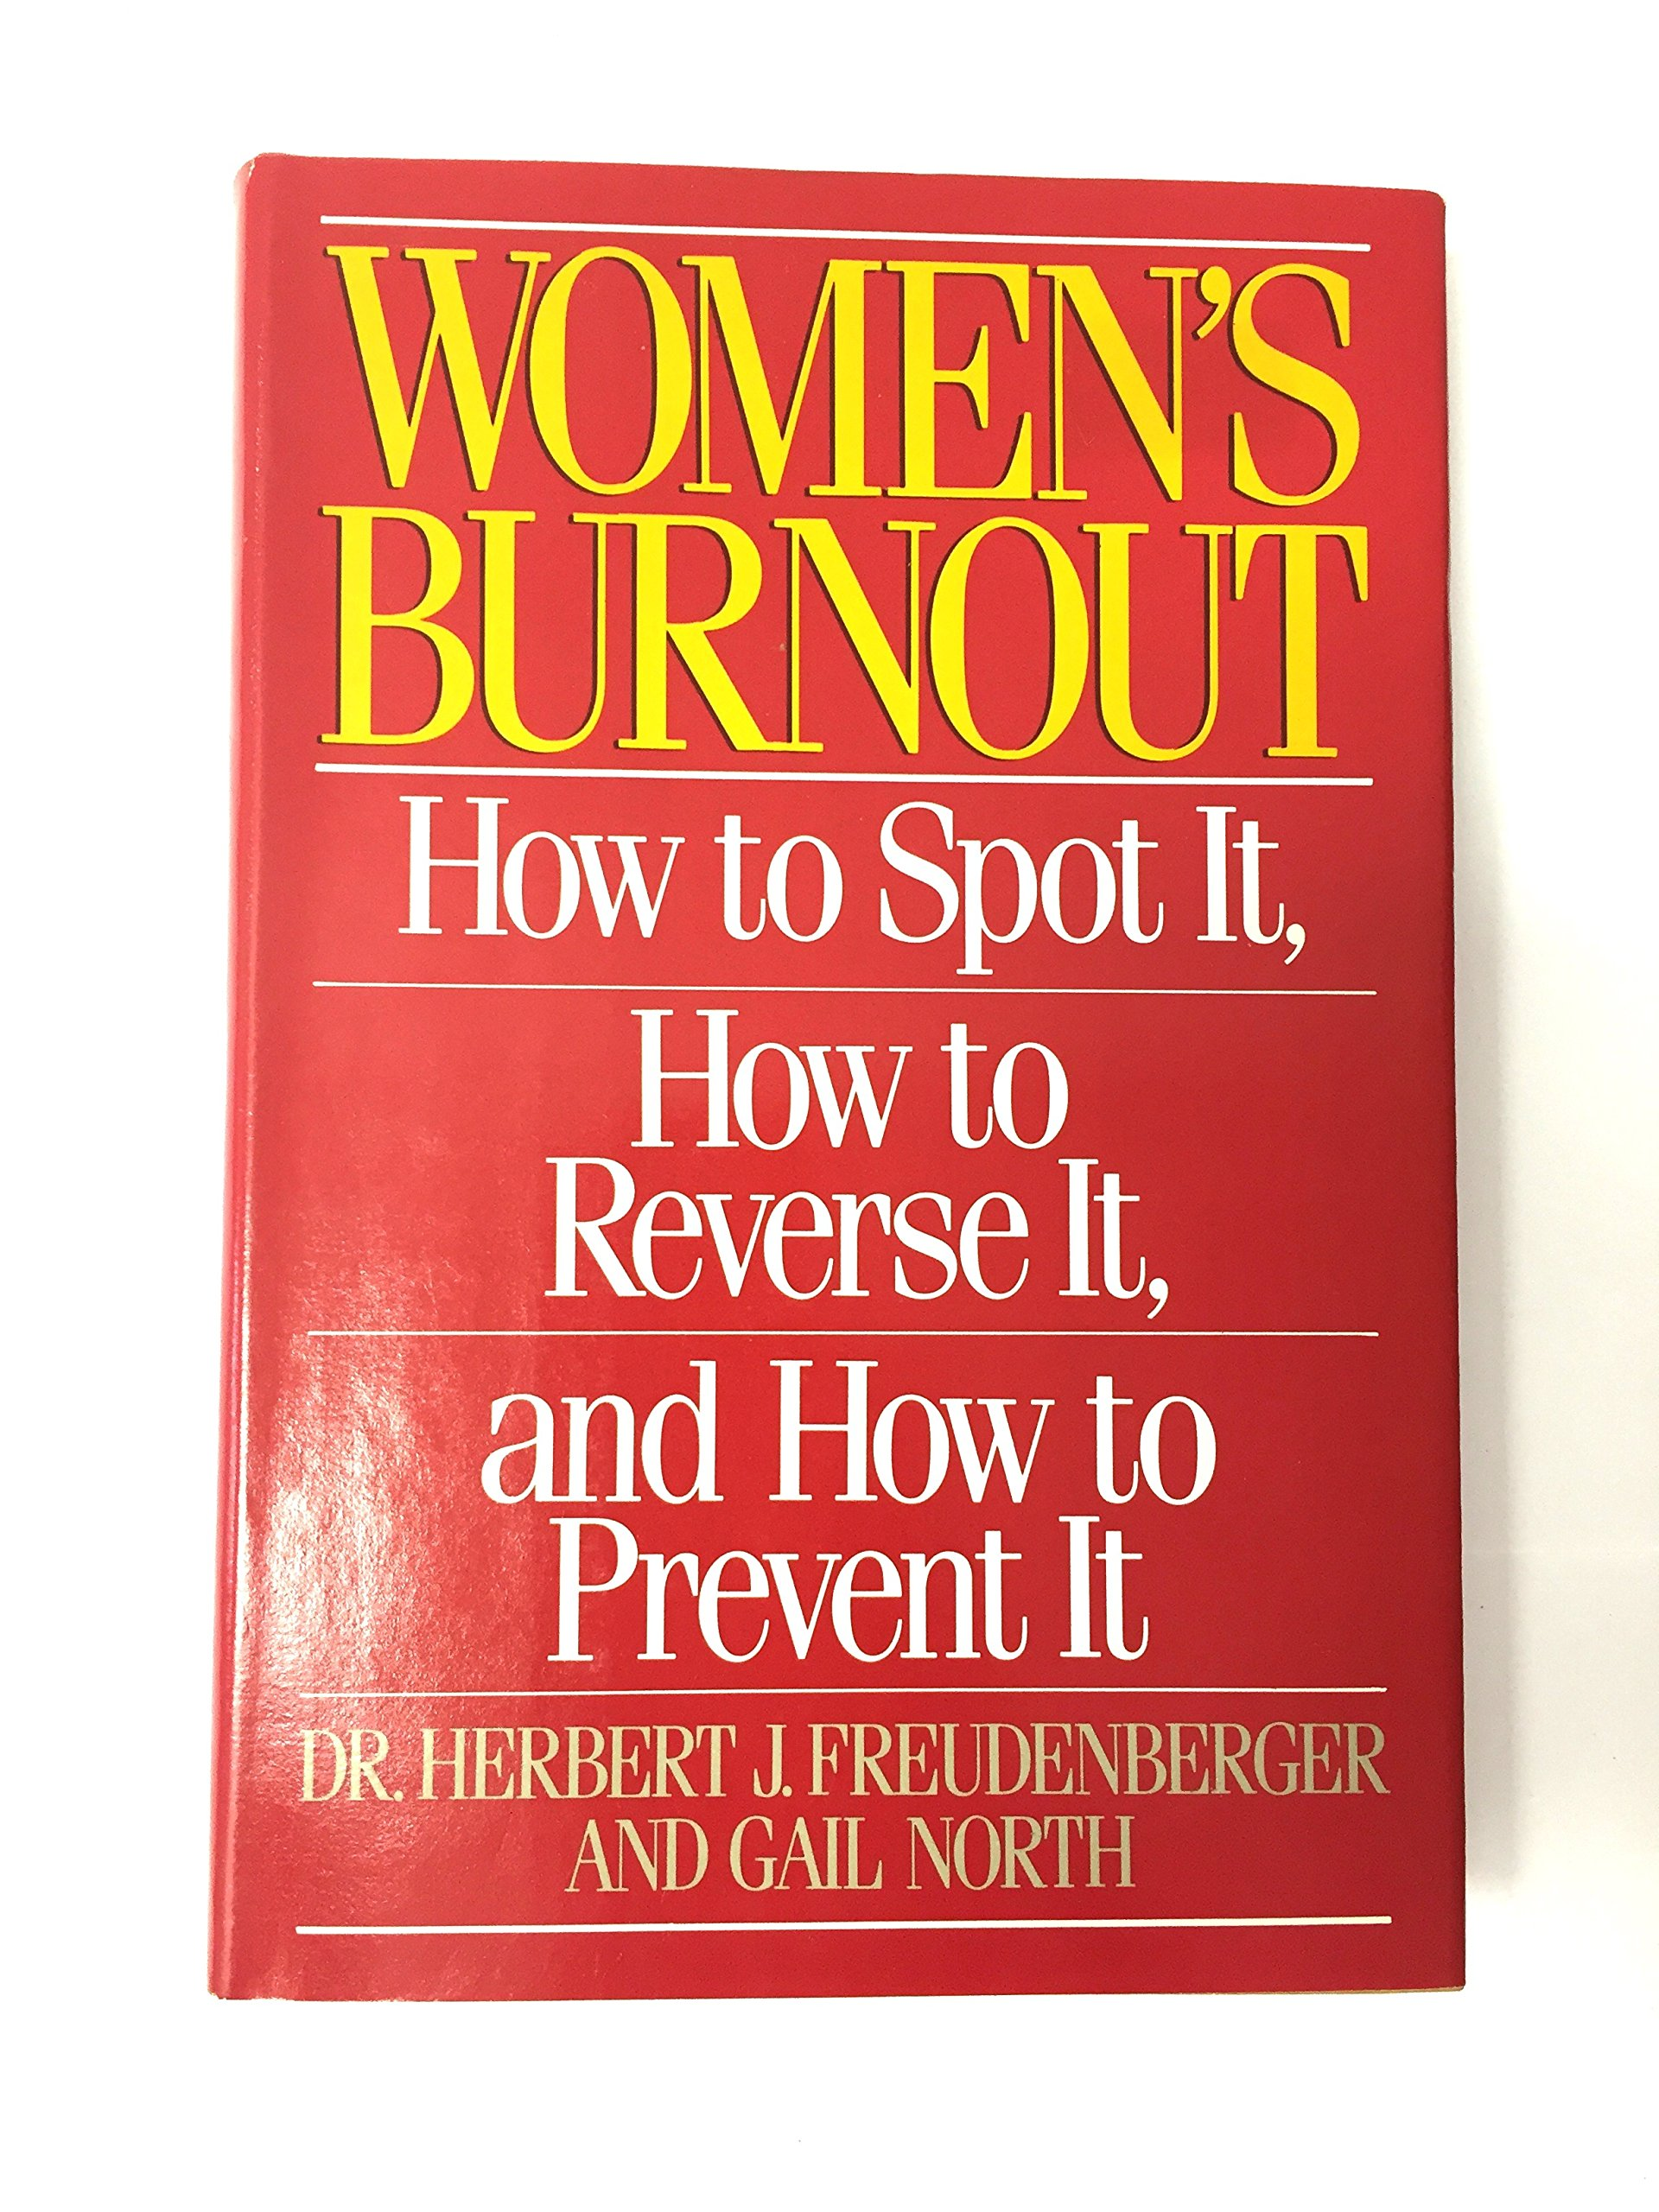 Women's Burnout: How to Spot It, How to Reverse It, and How